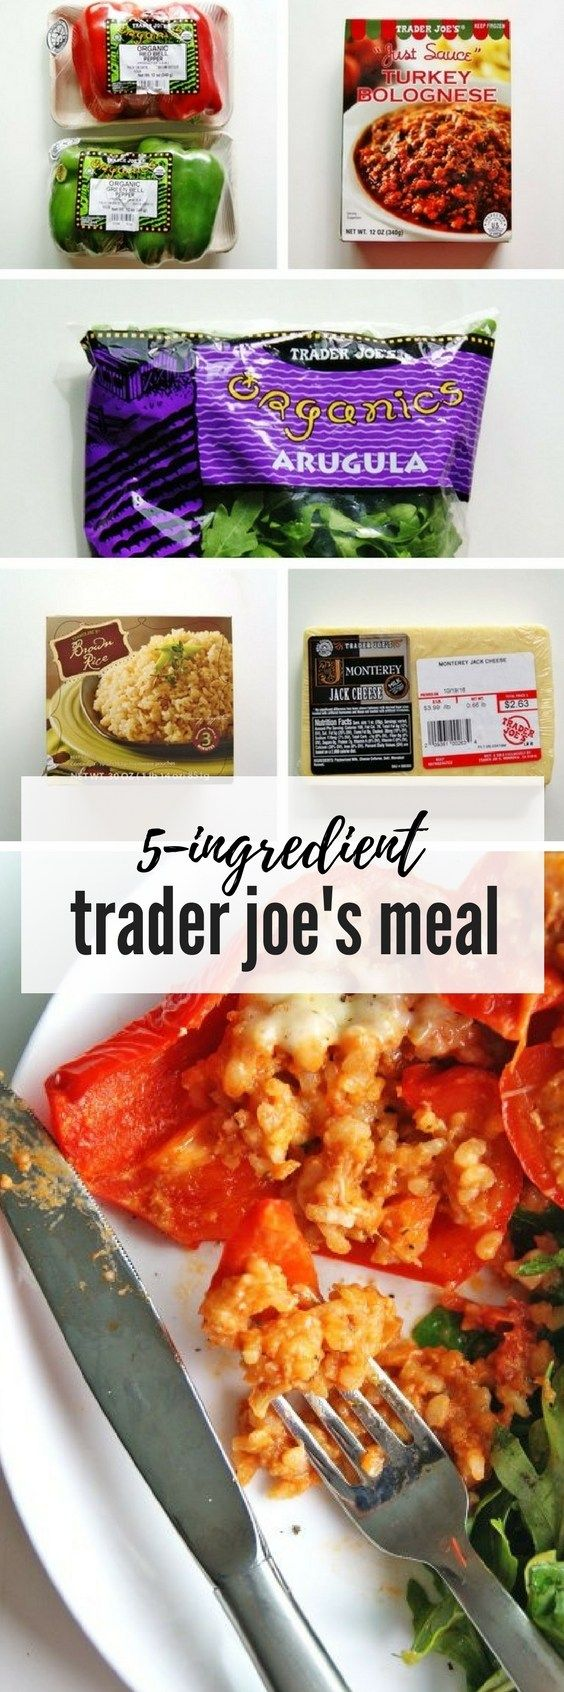 Easy Trader Joes Recipe: Turkey Stuffed Peppers. Click here for this 6-ingredient dinner! #traderjoes #traderjoesrecipe #easydinner #dinnerrecipe